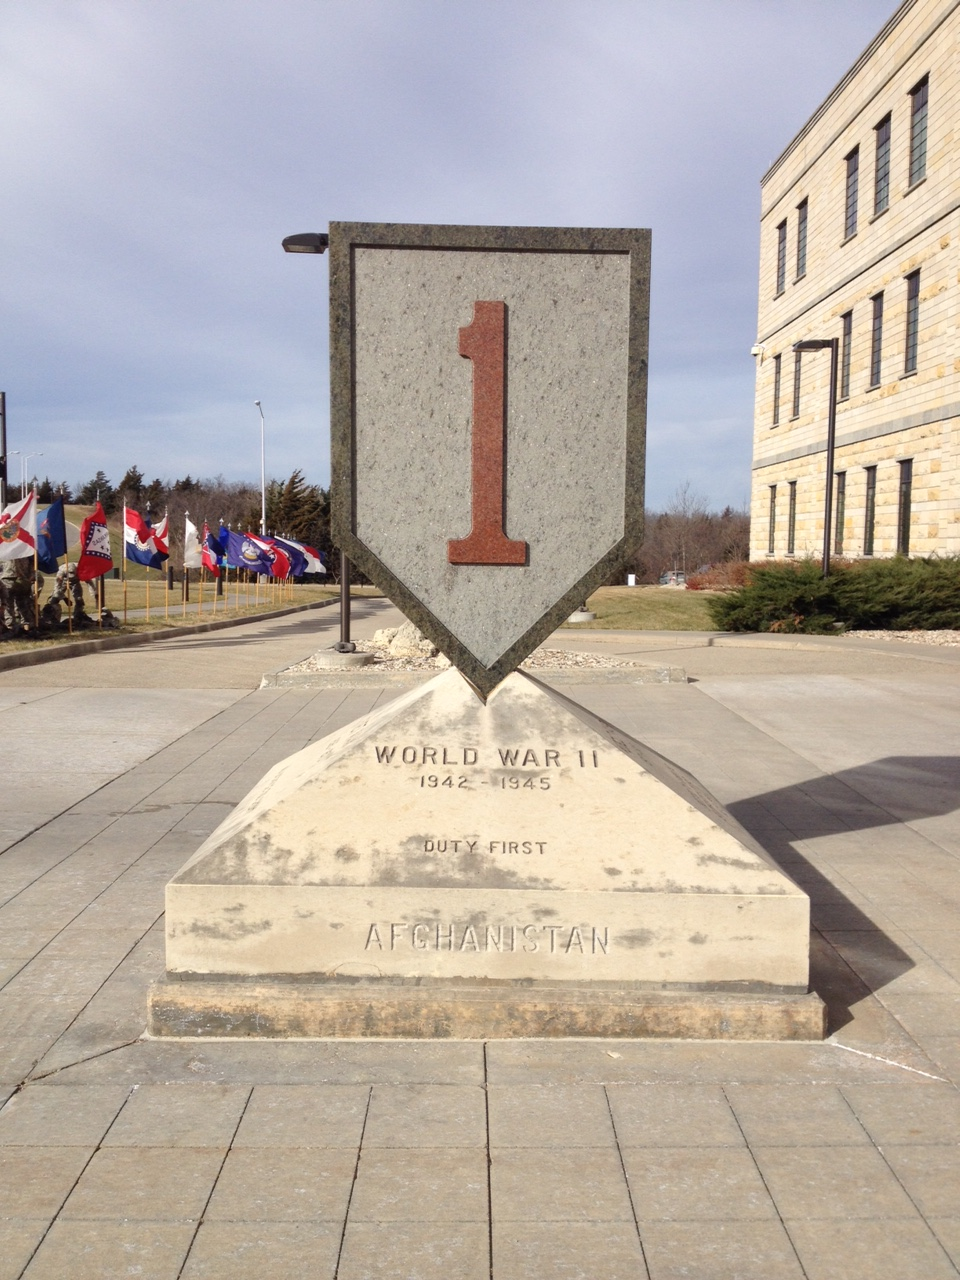 The Big Red One is the nickname of the First Infantry Division, due to the division's insignia - a big, red one, signifying 1st. (Photo by J. Schafer)